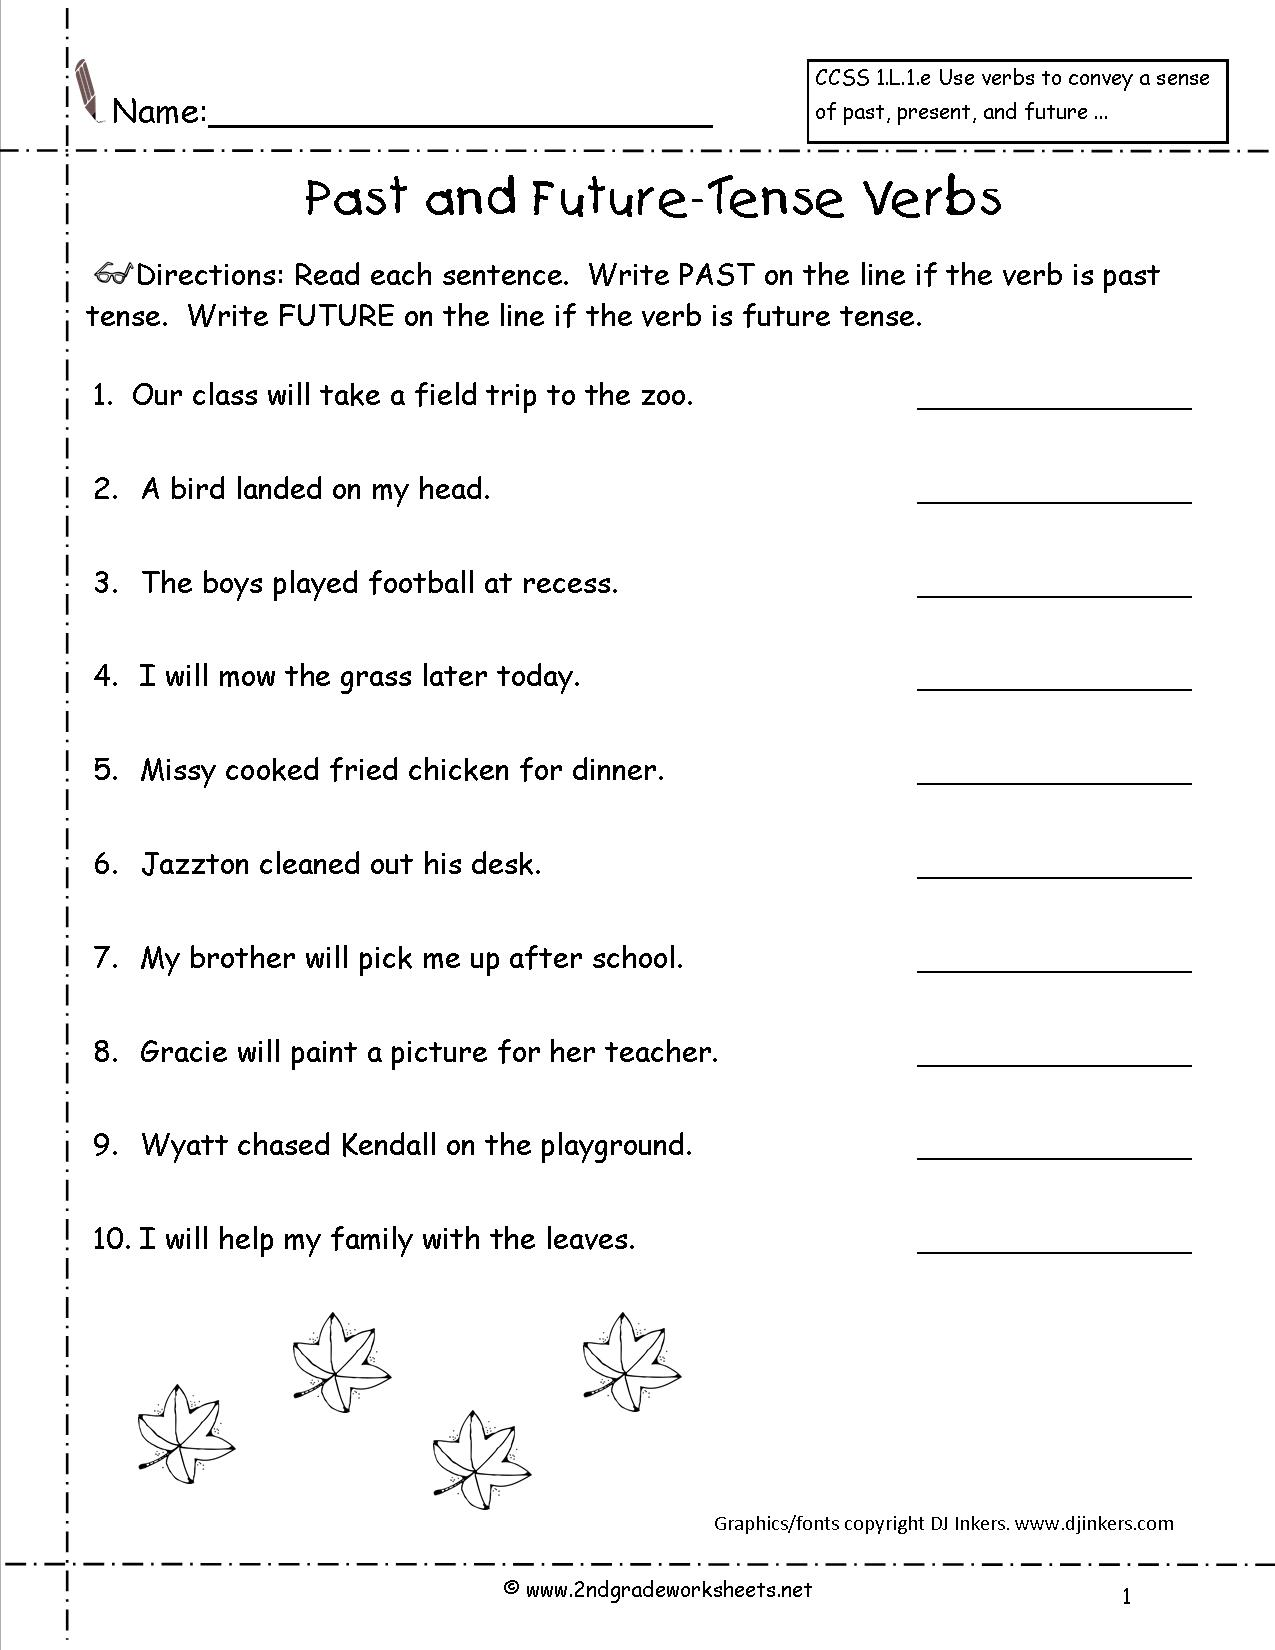 Future Tense Worksheet For Class 3